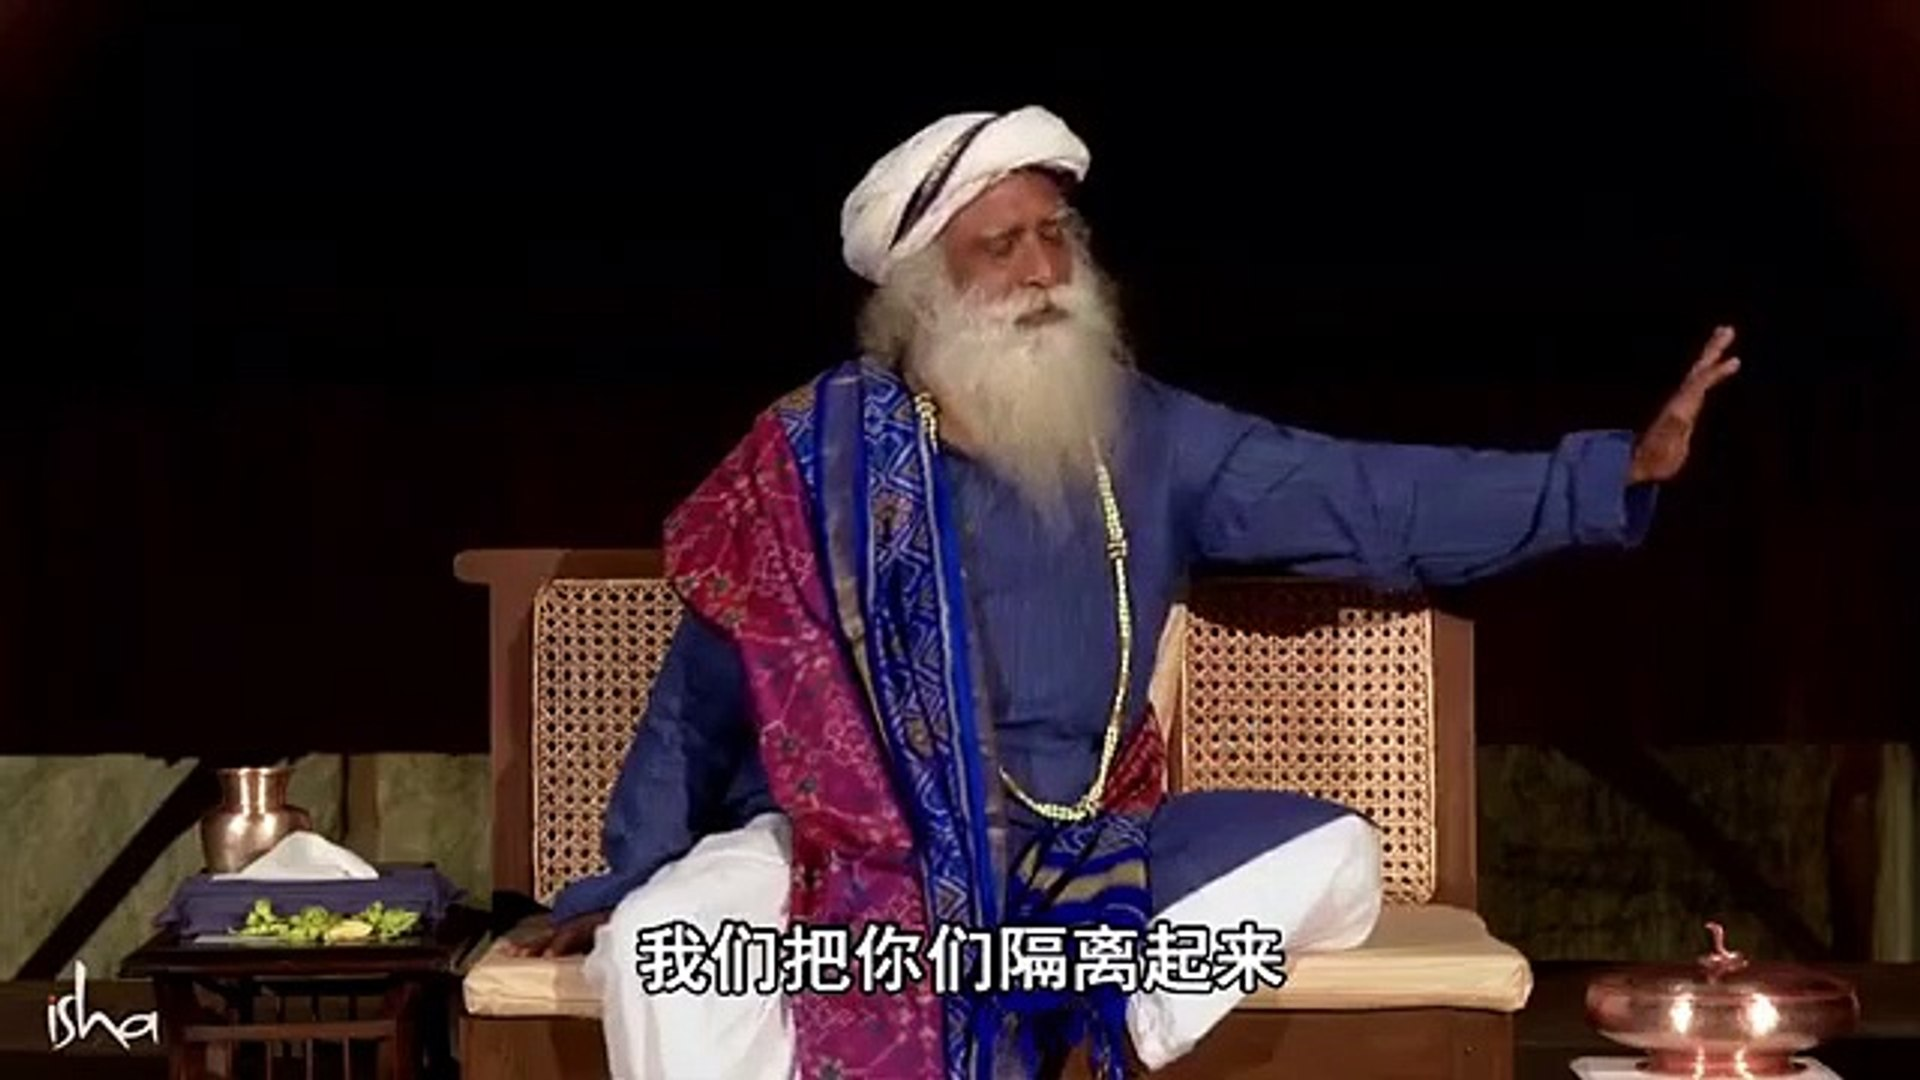 Sadhguru ¦ About Corona Virus ¦ Chinese Virus Song ¦ With Chinese Subtitles ¦